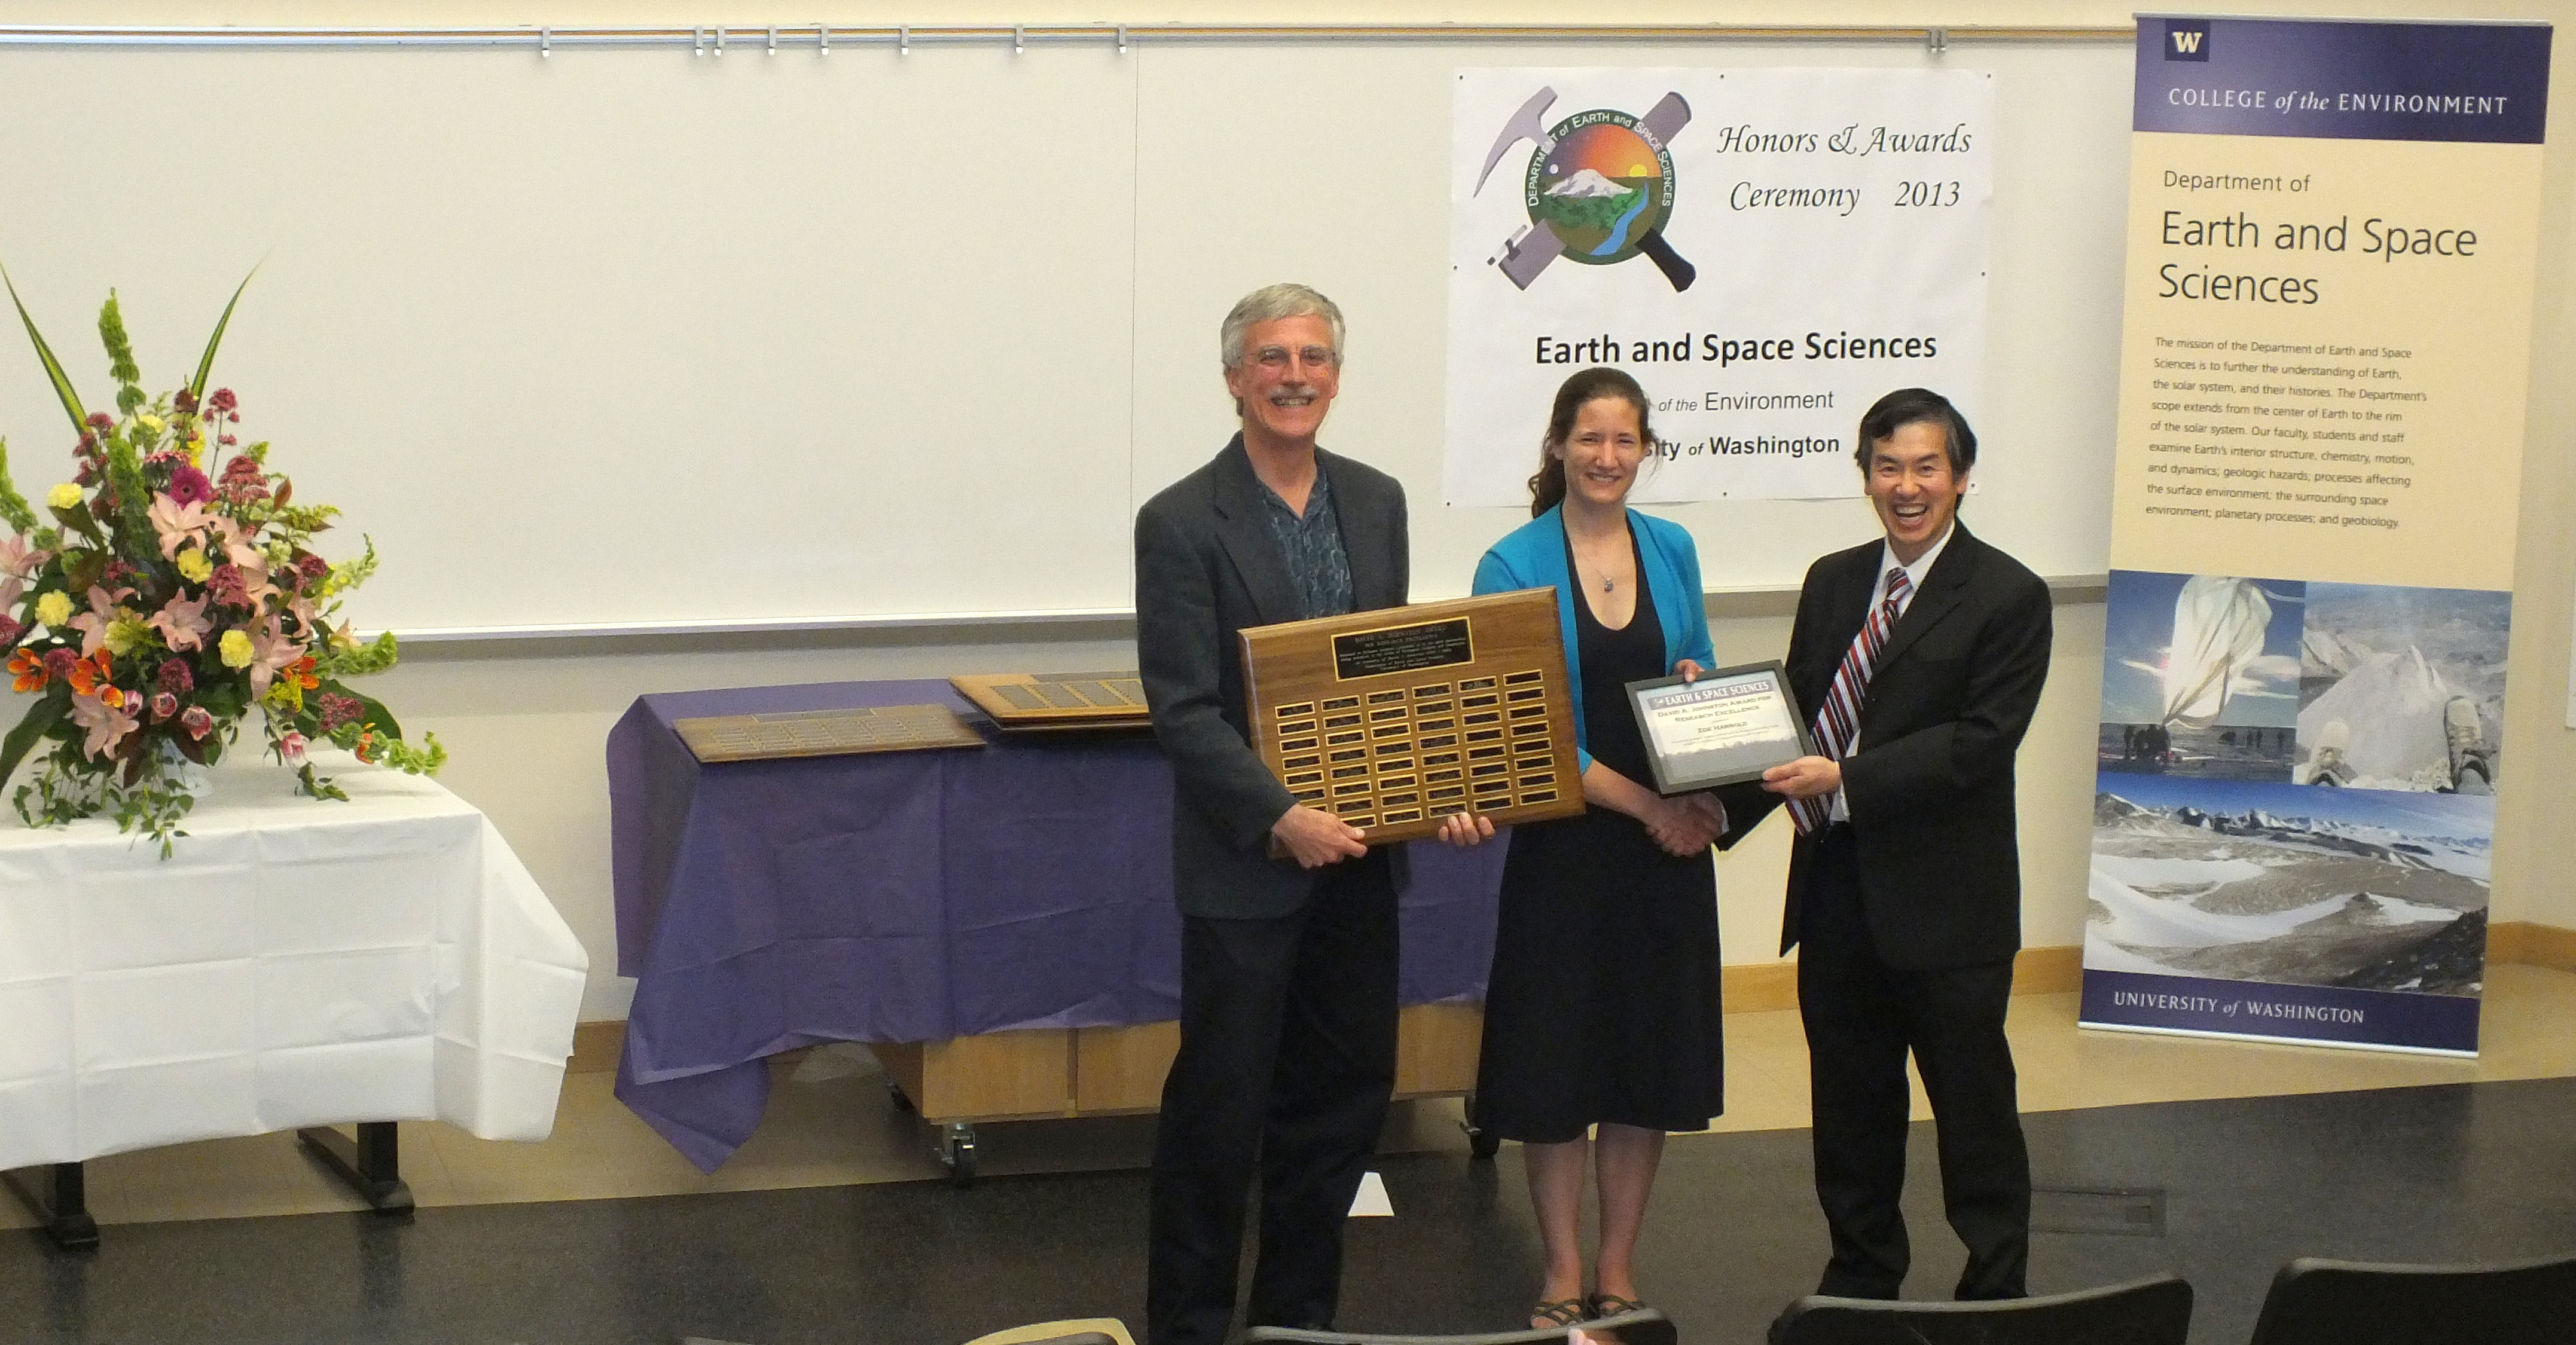 Photo of Zoe Harrold receiving the Johnston Prize for Research Excellence from Ken Creager and Robert Winglee.